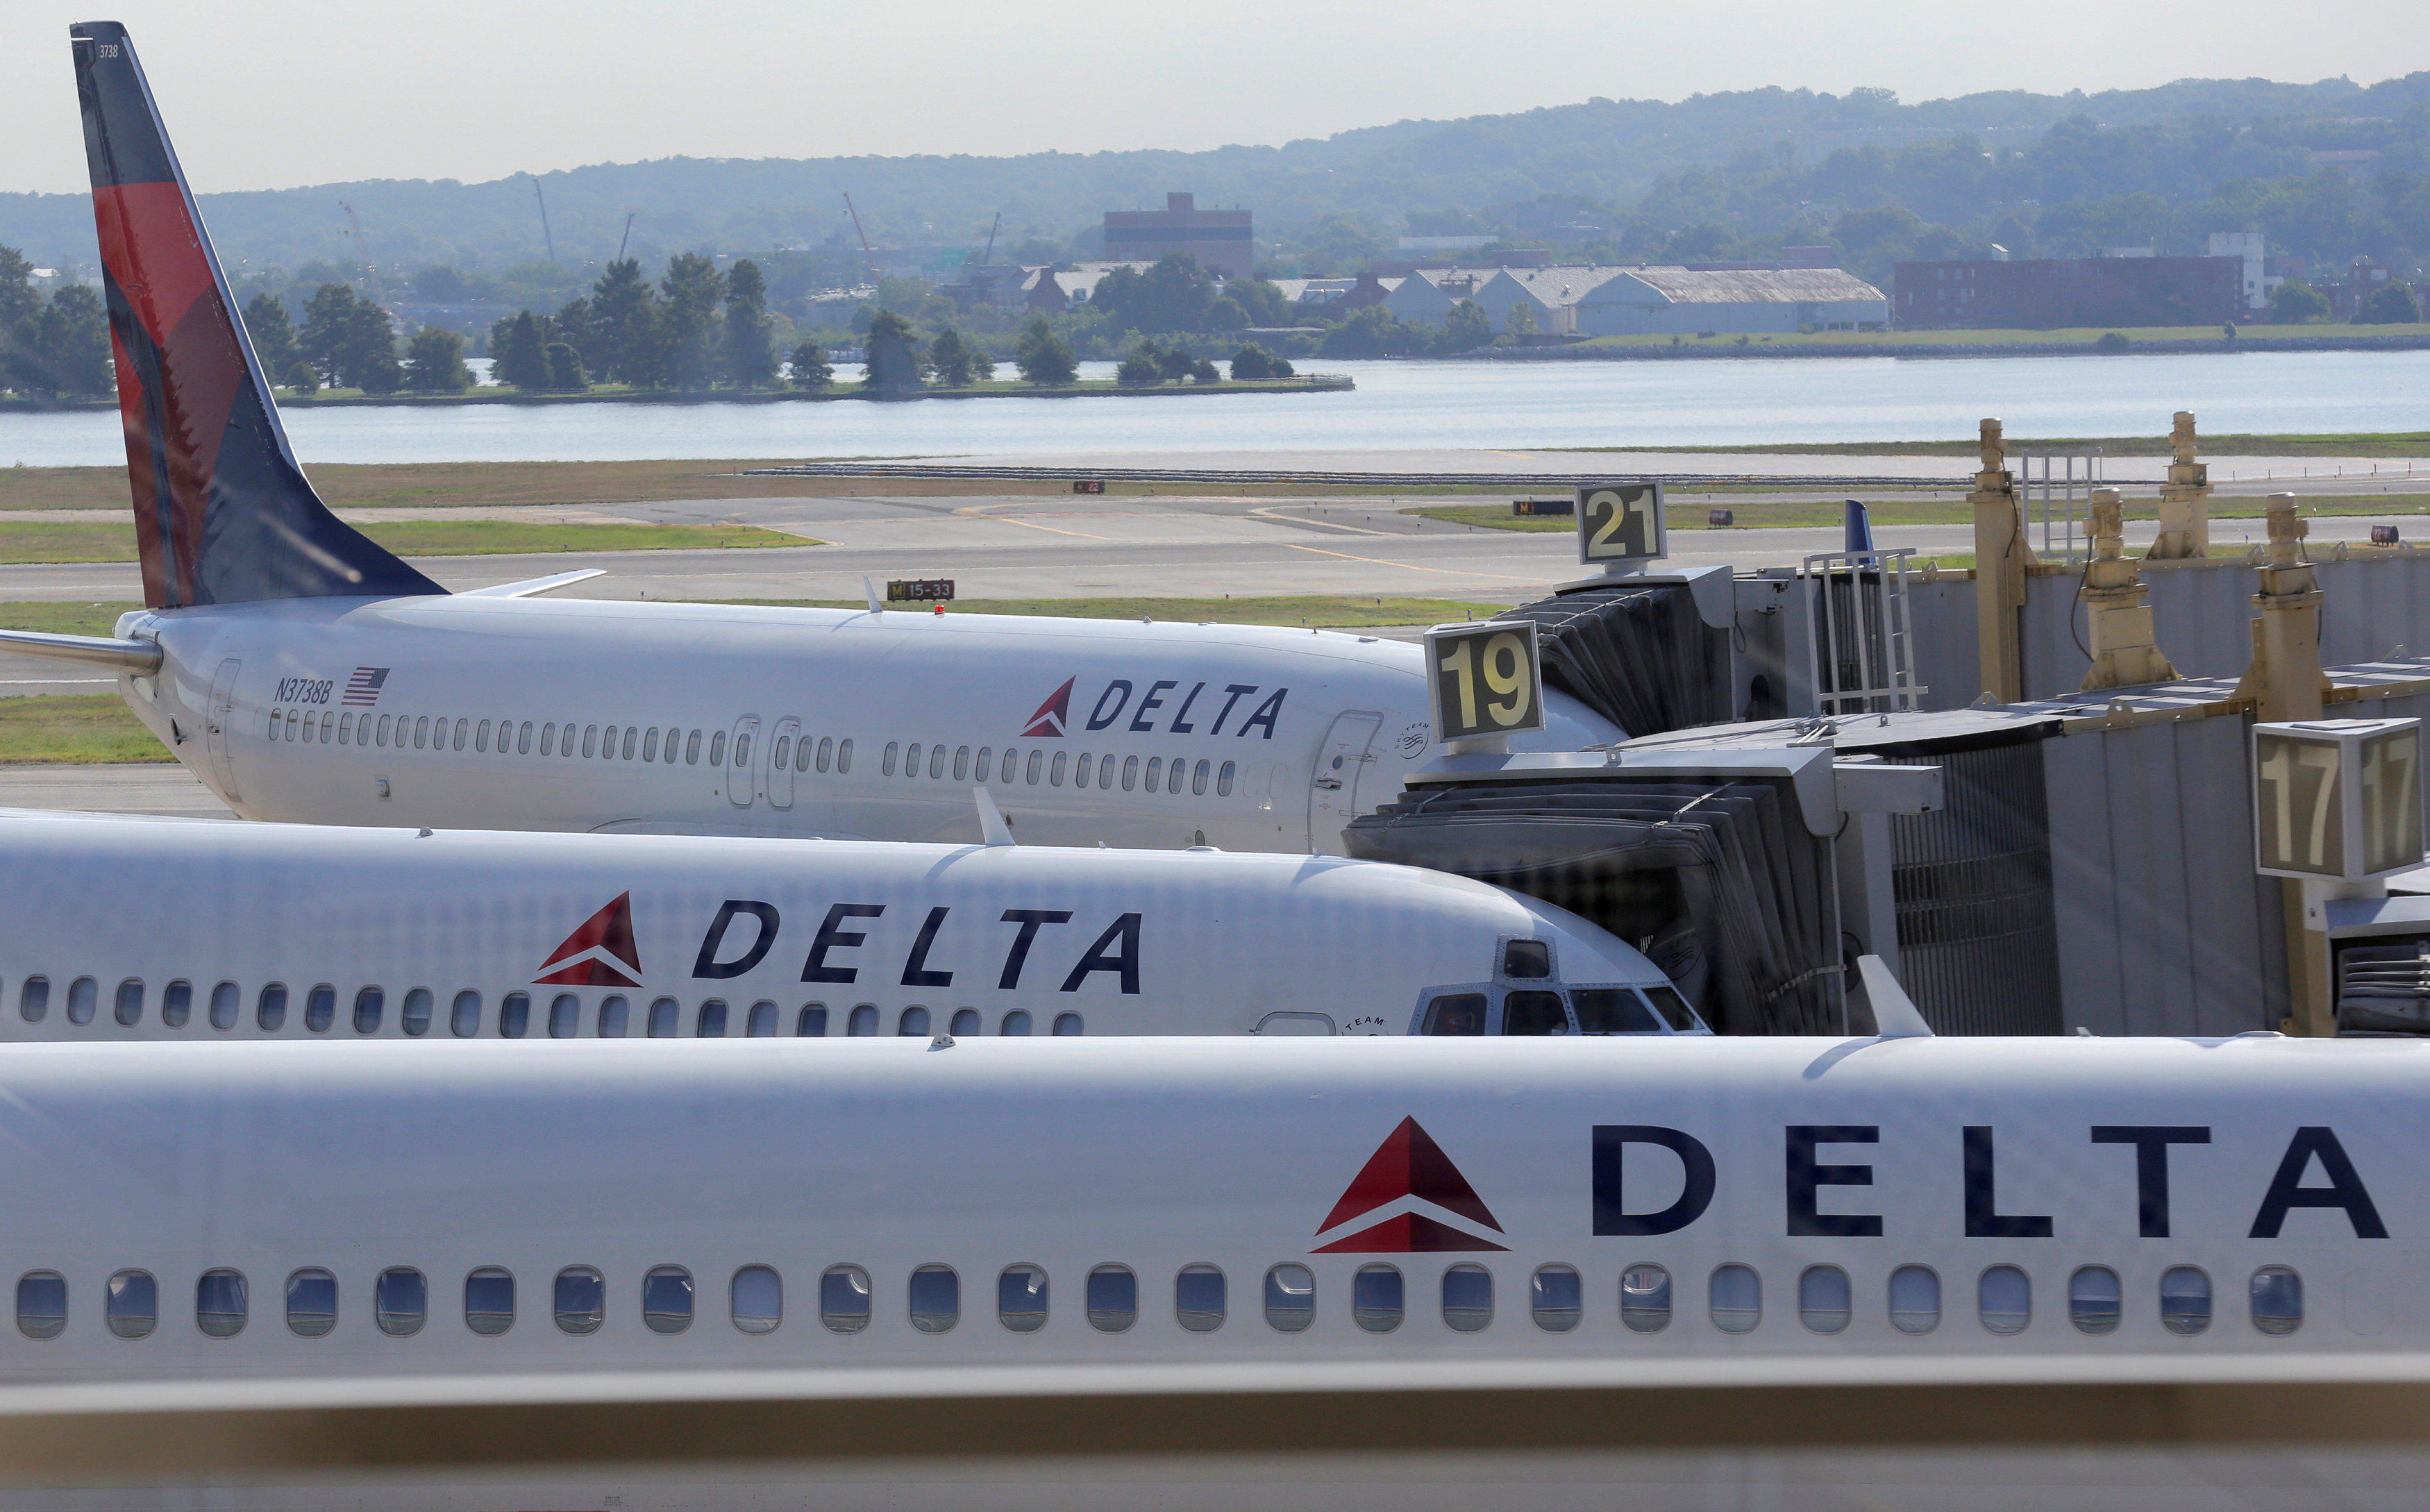 delta air lines technology issue today flights temporarily halted